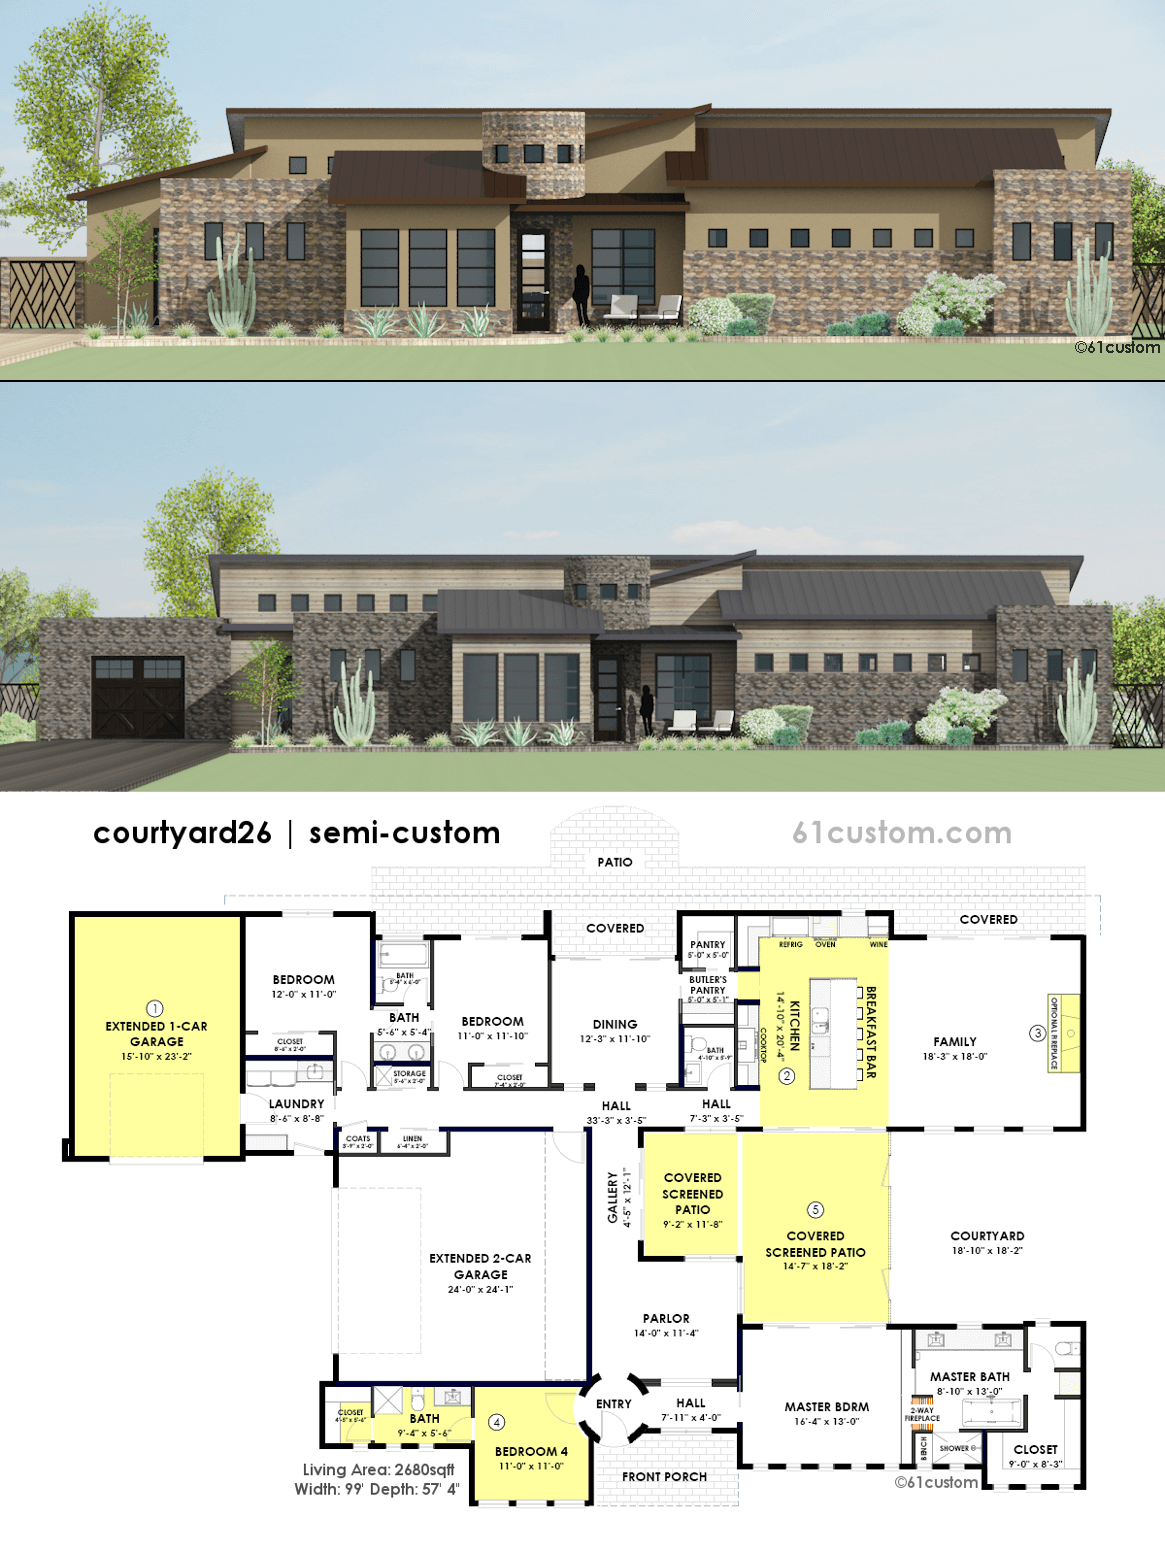 Courtyard House Plans | 61custom | Contemporary & Modern House Plans